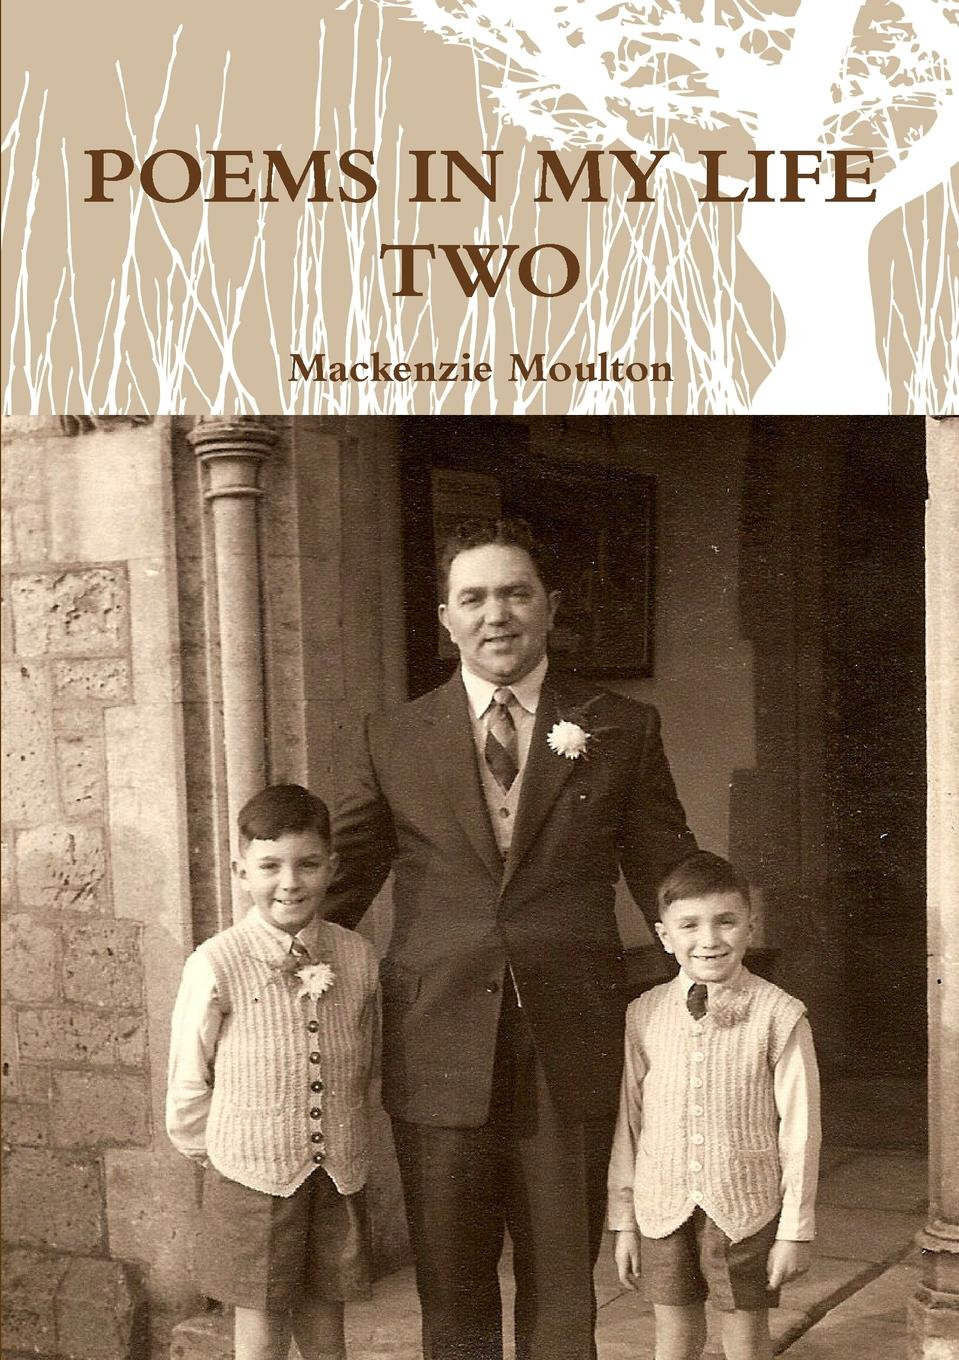 Mackenzie Moulton POEMS IN MY LIFE TWO susan bonk plumridge zero to life in one conversation a selection of poetry from my journal